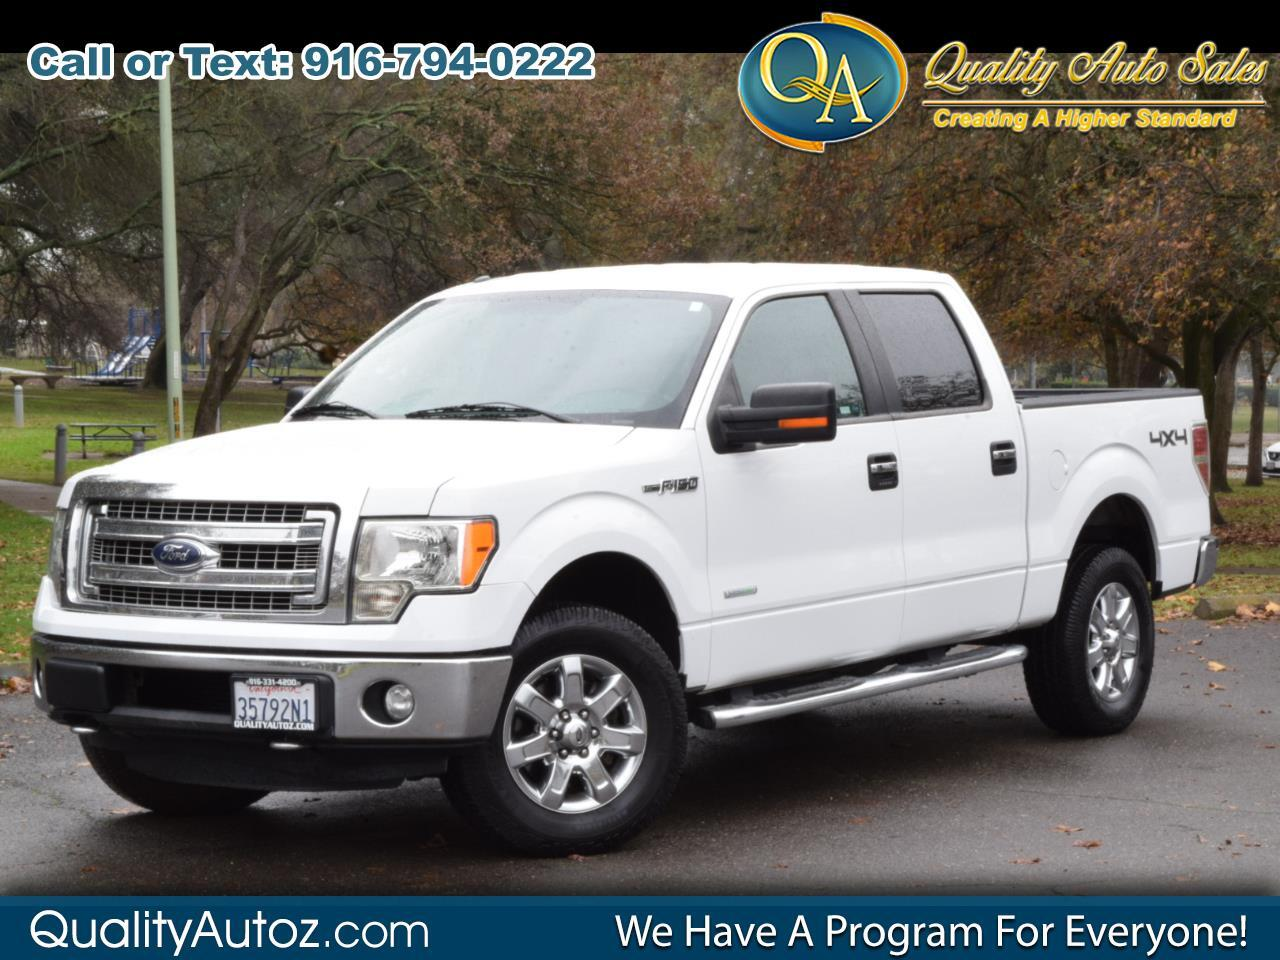 Bank Bloq Van Design On Stock.Used 2013 Ford F 150 Xlt Pickup 4d 5 1 2 Ft For Sale In Sacramento